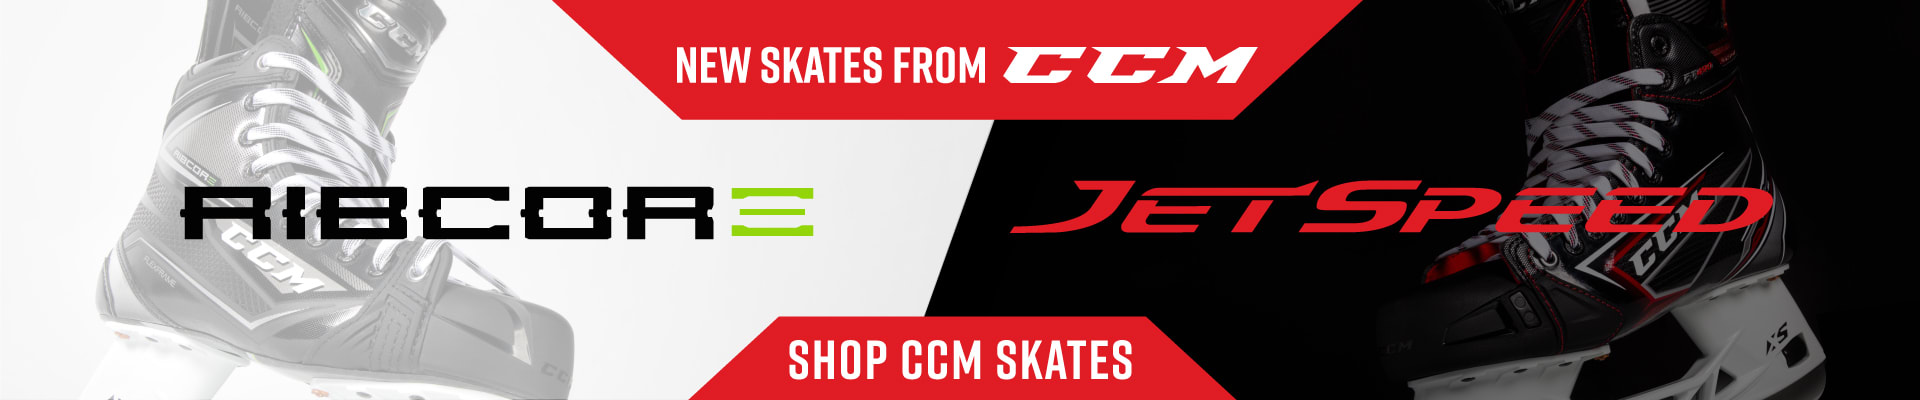 Shop New CCM Skates